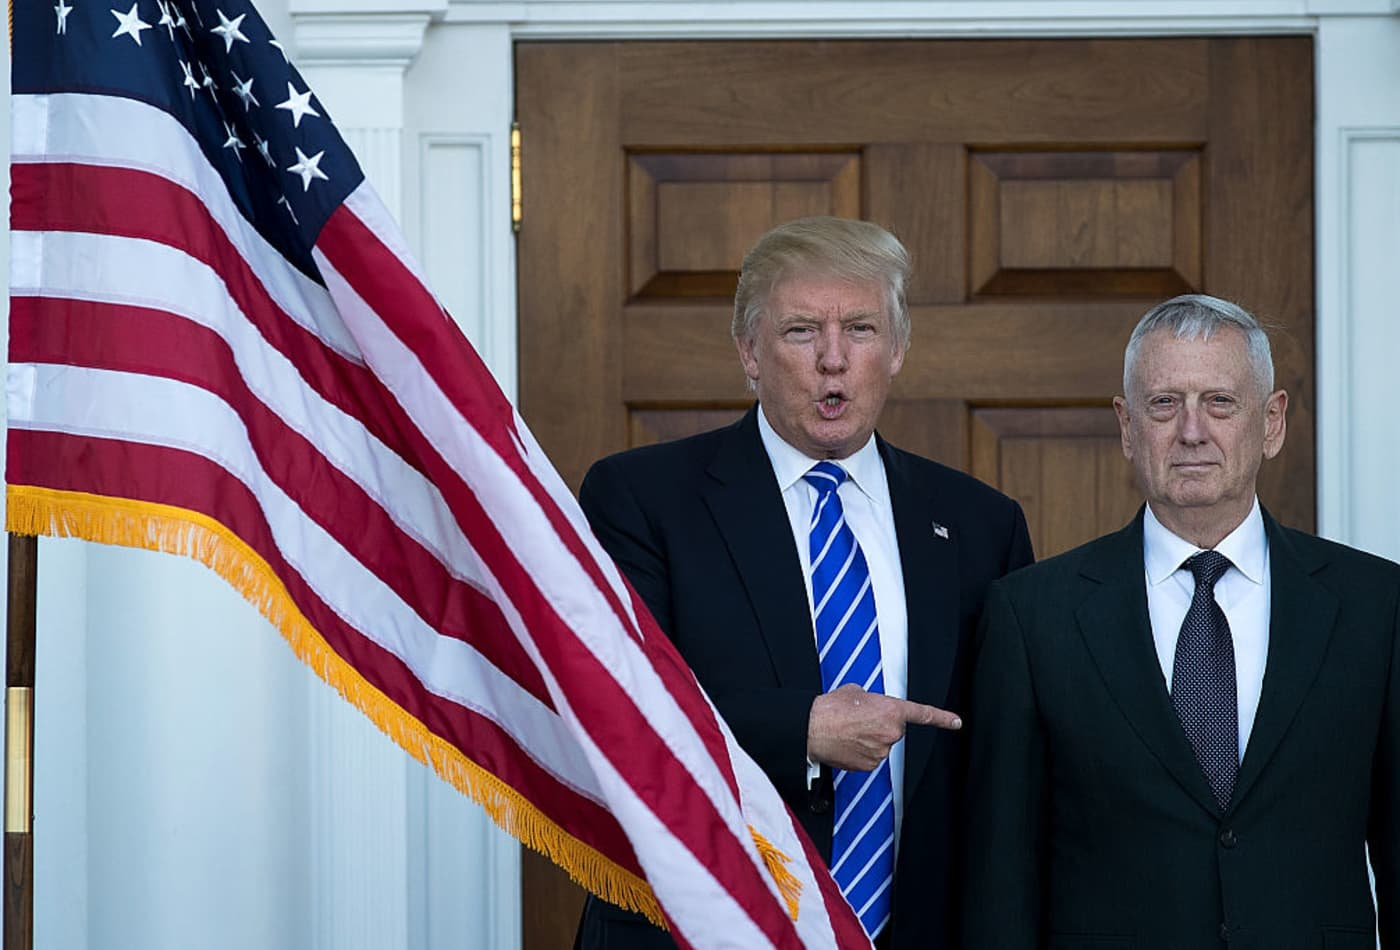 Trump told Mattis to 'screw Amazon' out of $10 billion Pentagon cloud contract, insider account claims